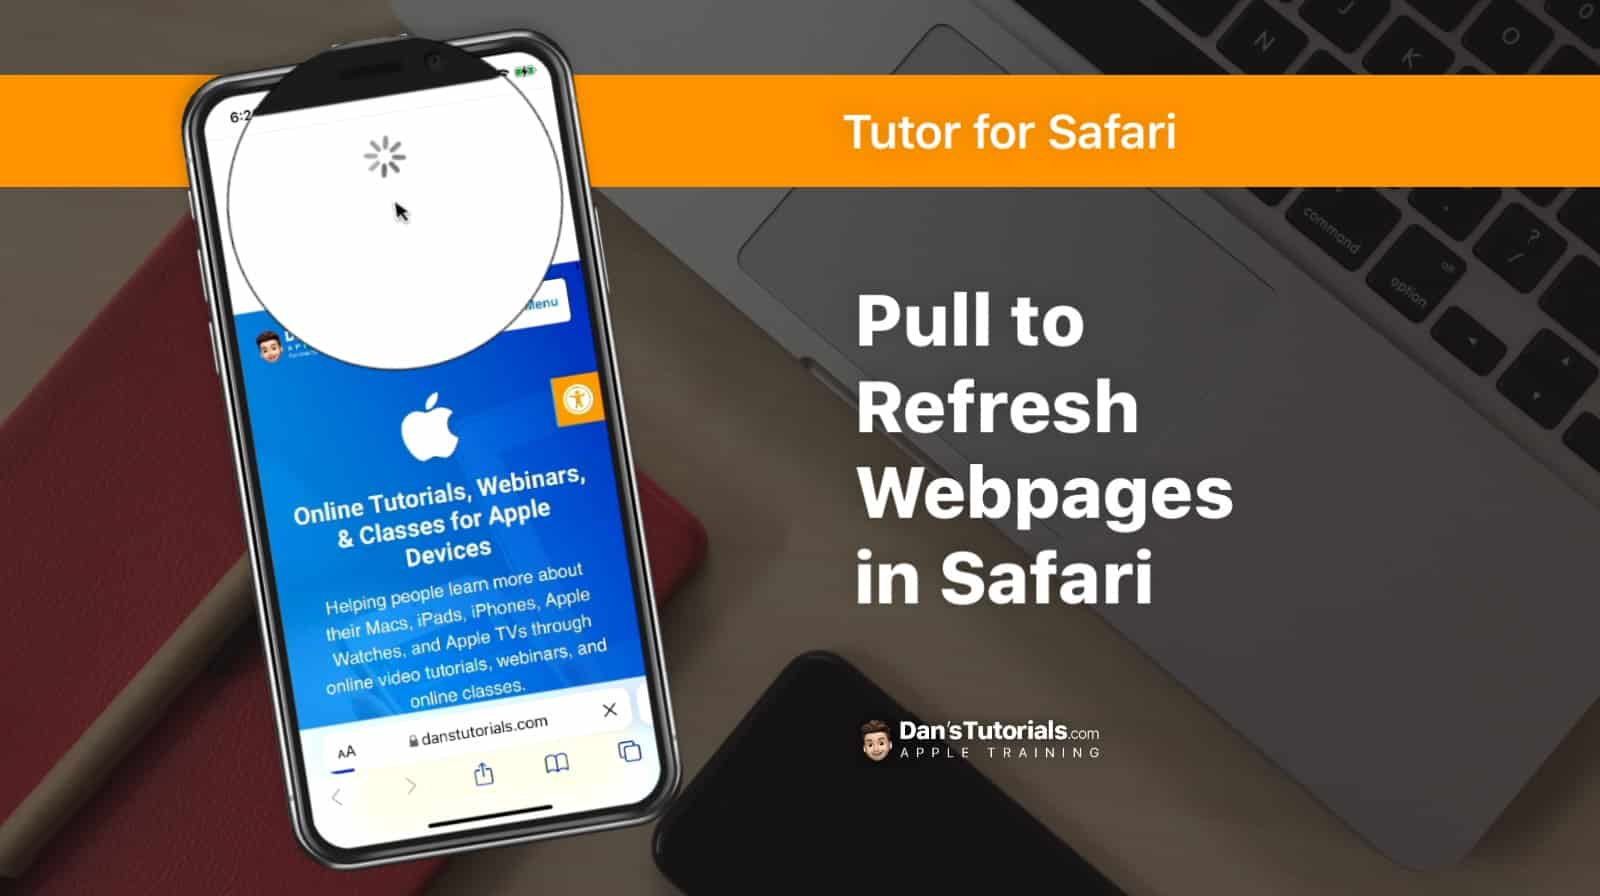 Pull to Refresh Webpages in Safari on the iPhone